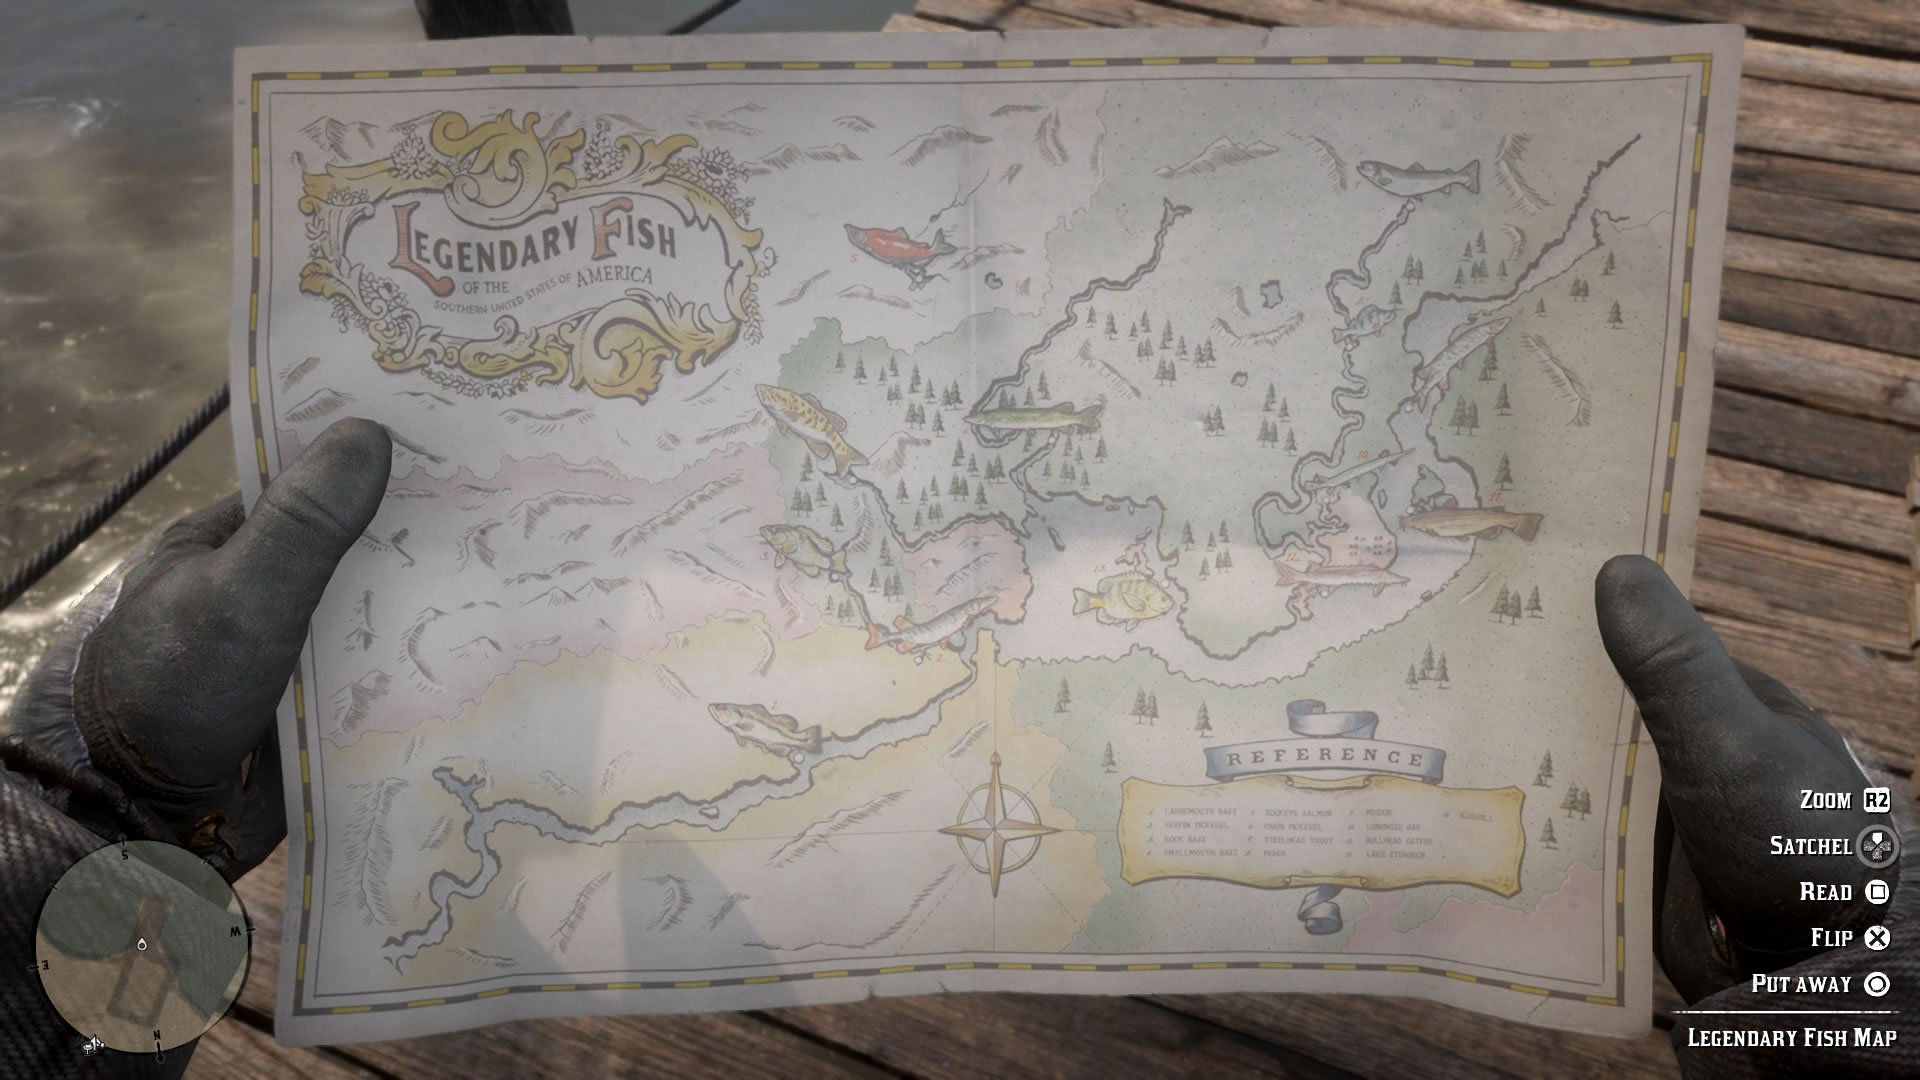 Red Dead Redemption 2's Legendary Fish map